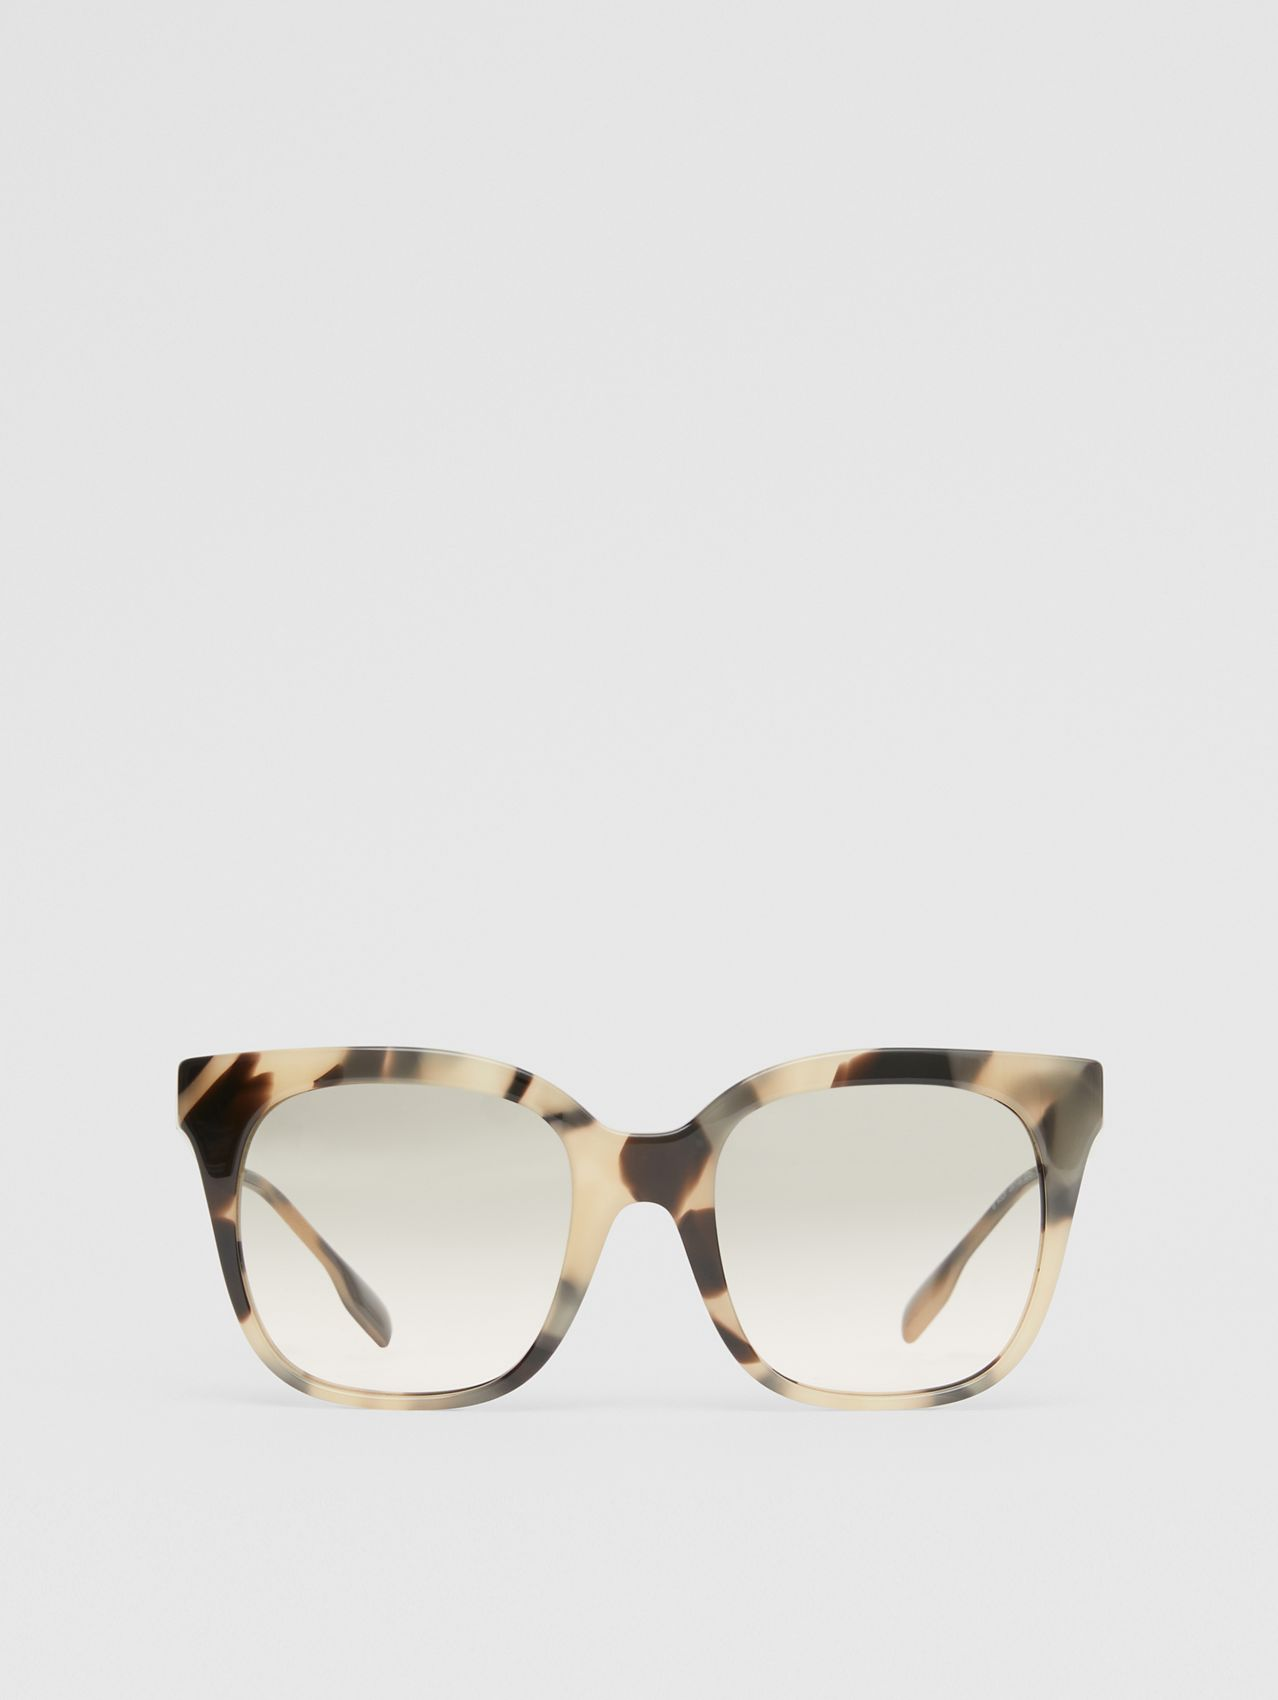 Butterfly Frame Sunglasses in Honey Tortoiseshell